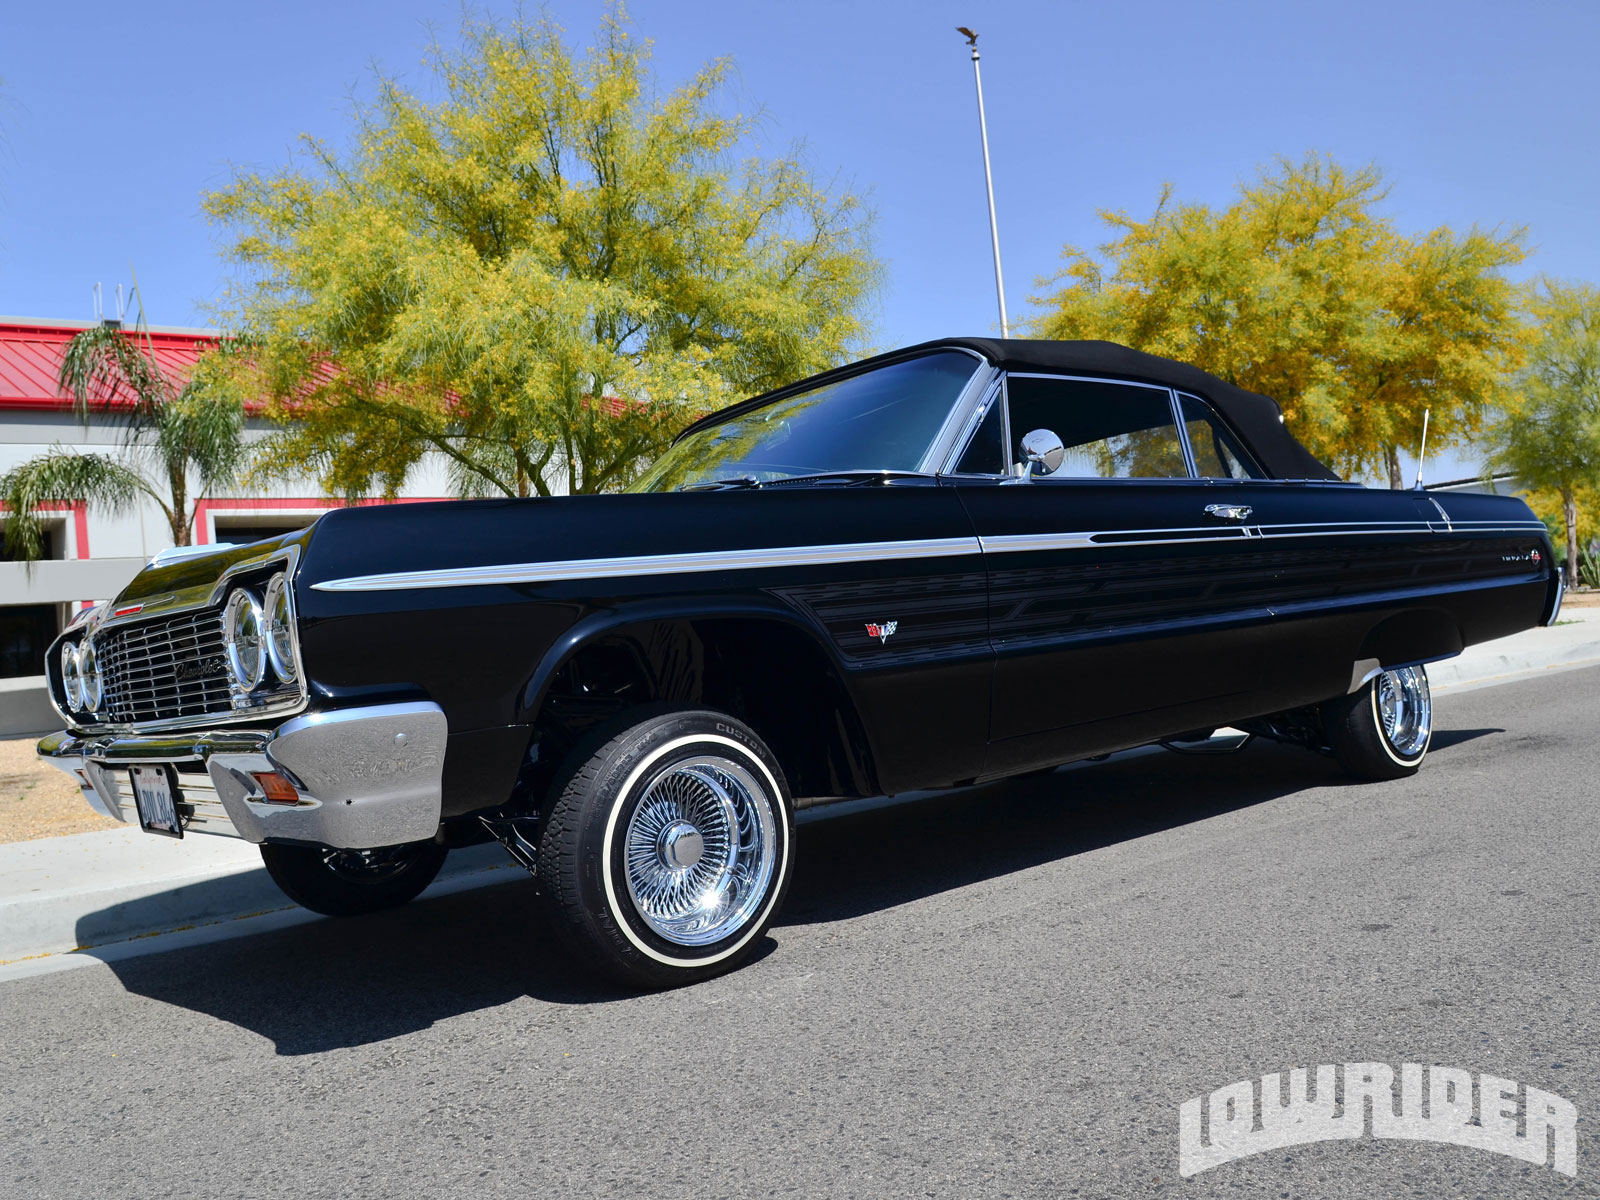 2008 Impala Ss For Sale >> 1964 Chevrolet Impala SS Rag Top - Lowrider Magazine